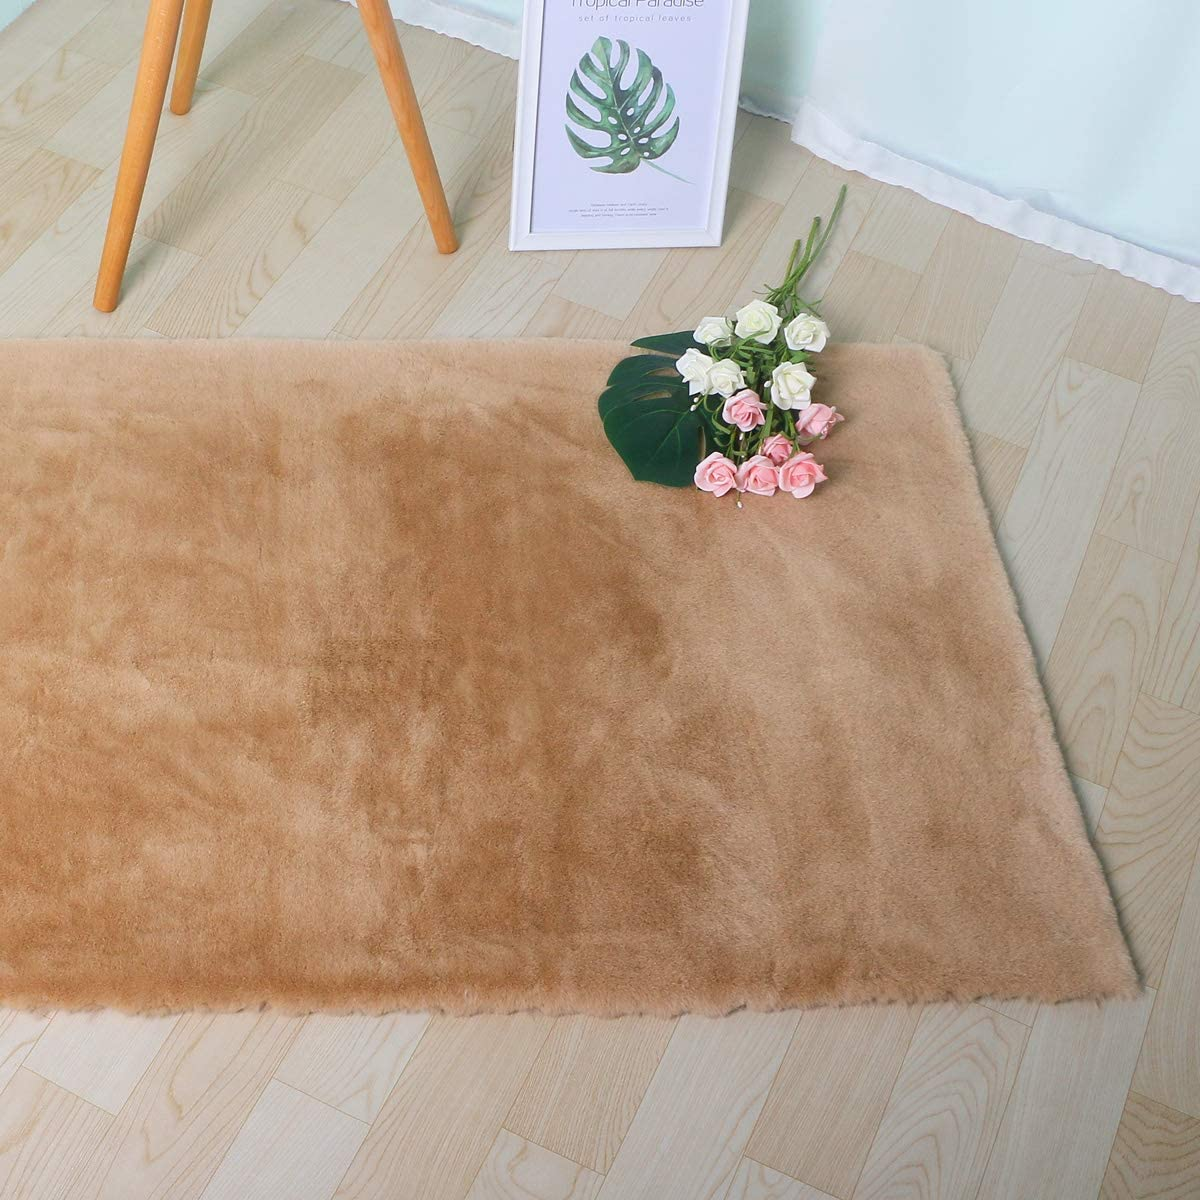 SXYHKJ Faux Sheepskin Area Rug,Lambskin Fur Rug,Super Soft Faux Rabbit Fur Rug| Fluffy Rug for The Bedroom 60x90cm, Brown Furry Carpet or Throw for Chairs Living Room or Nursery